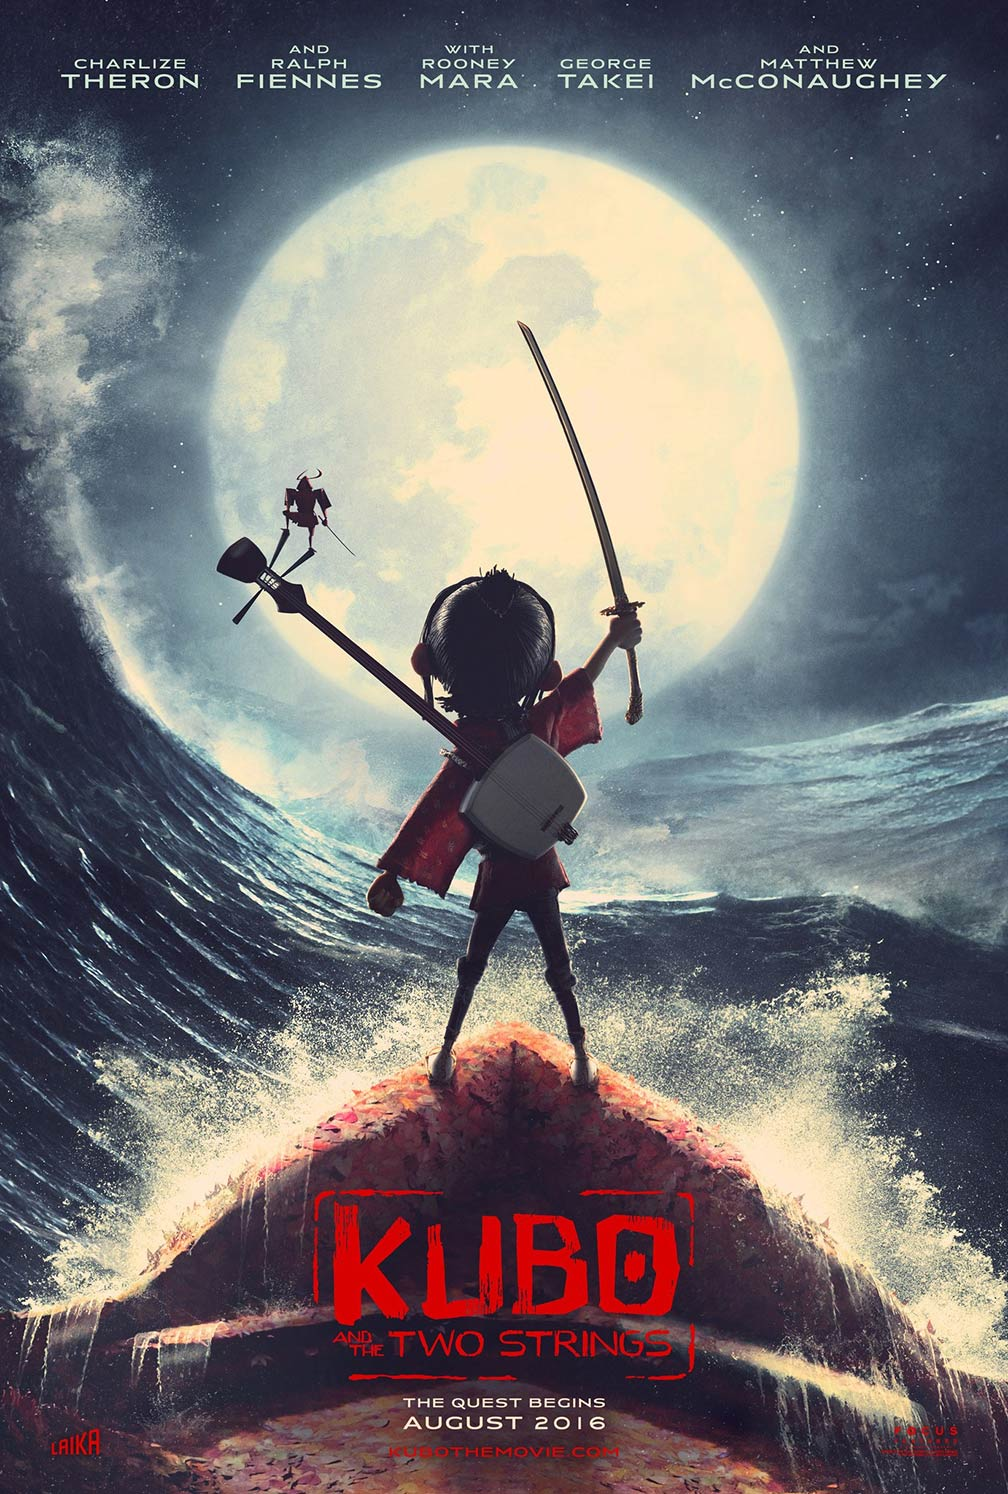 [Kubo and the Two Strings poster]